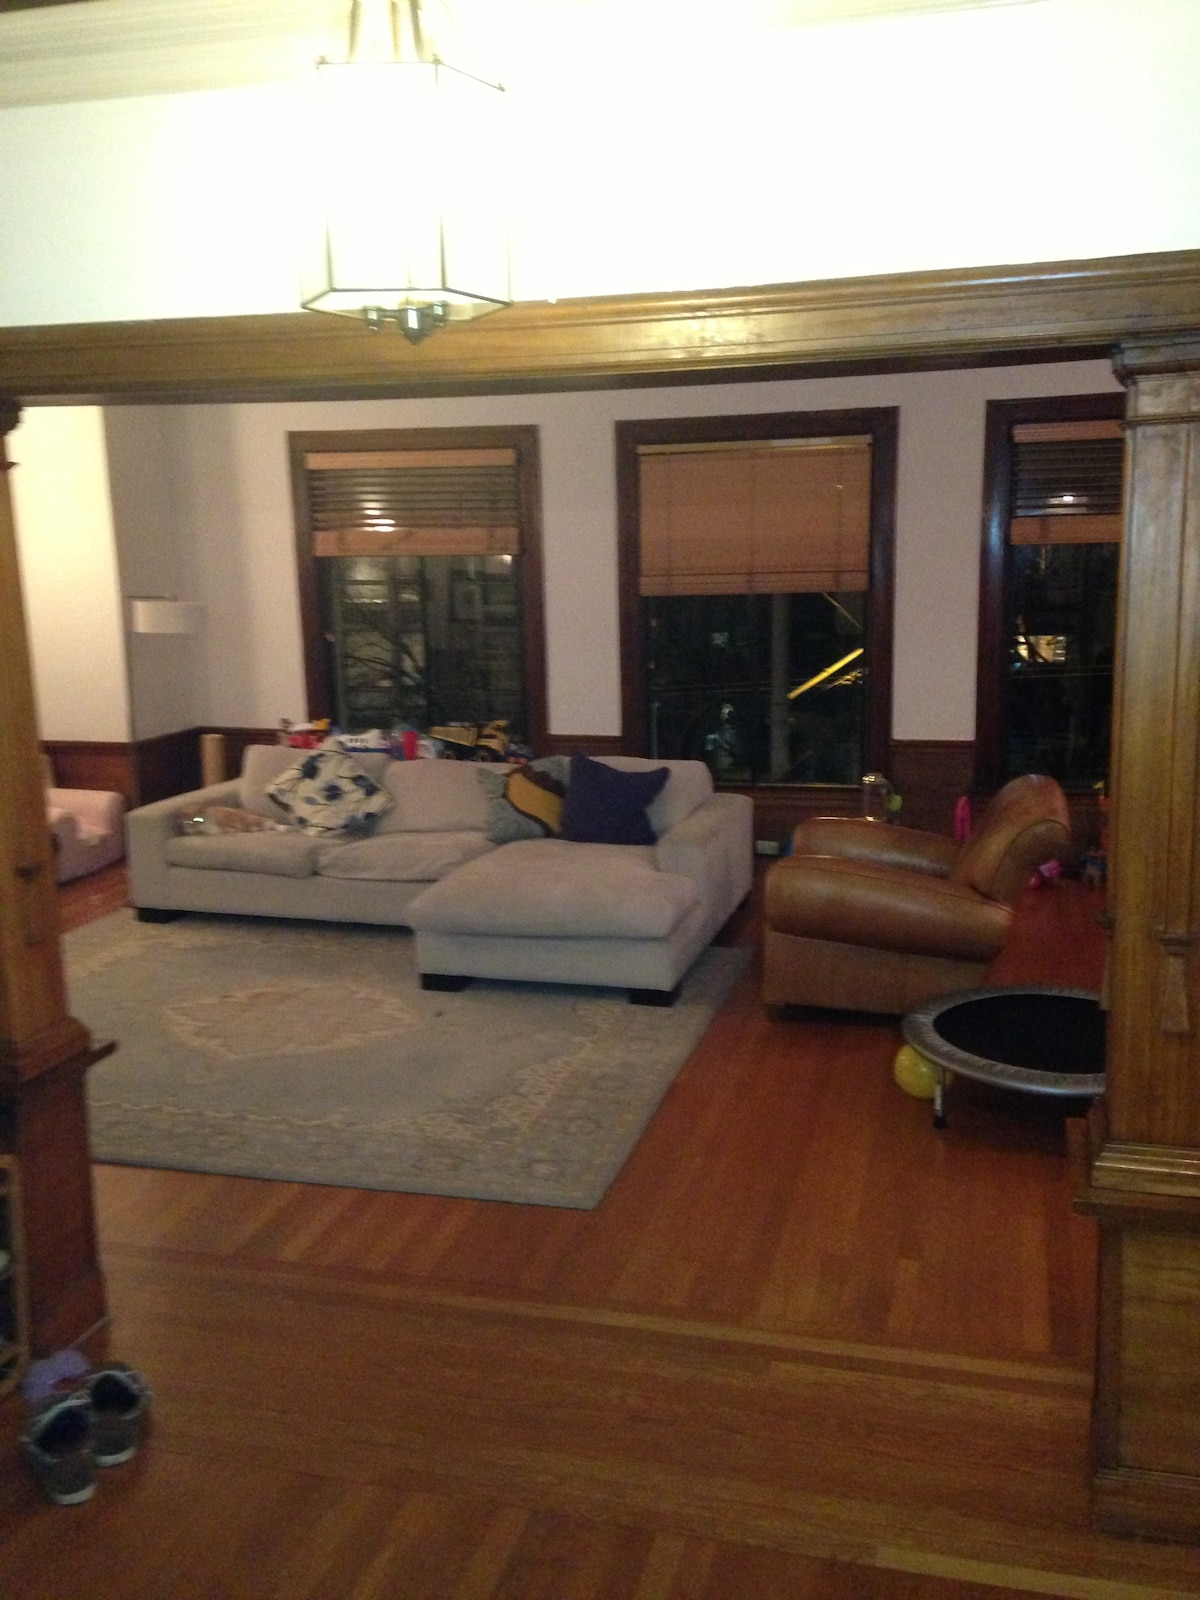 Big living room, very warm inviting place.